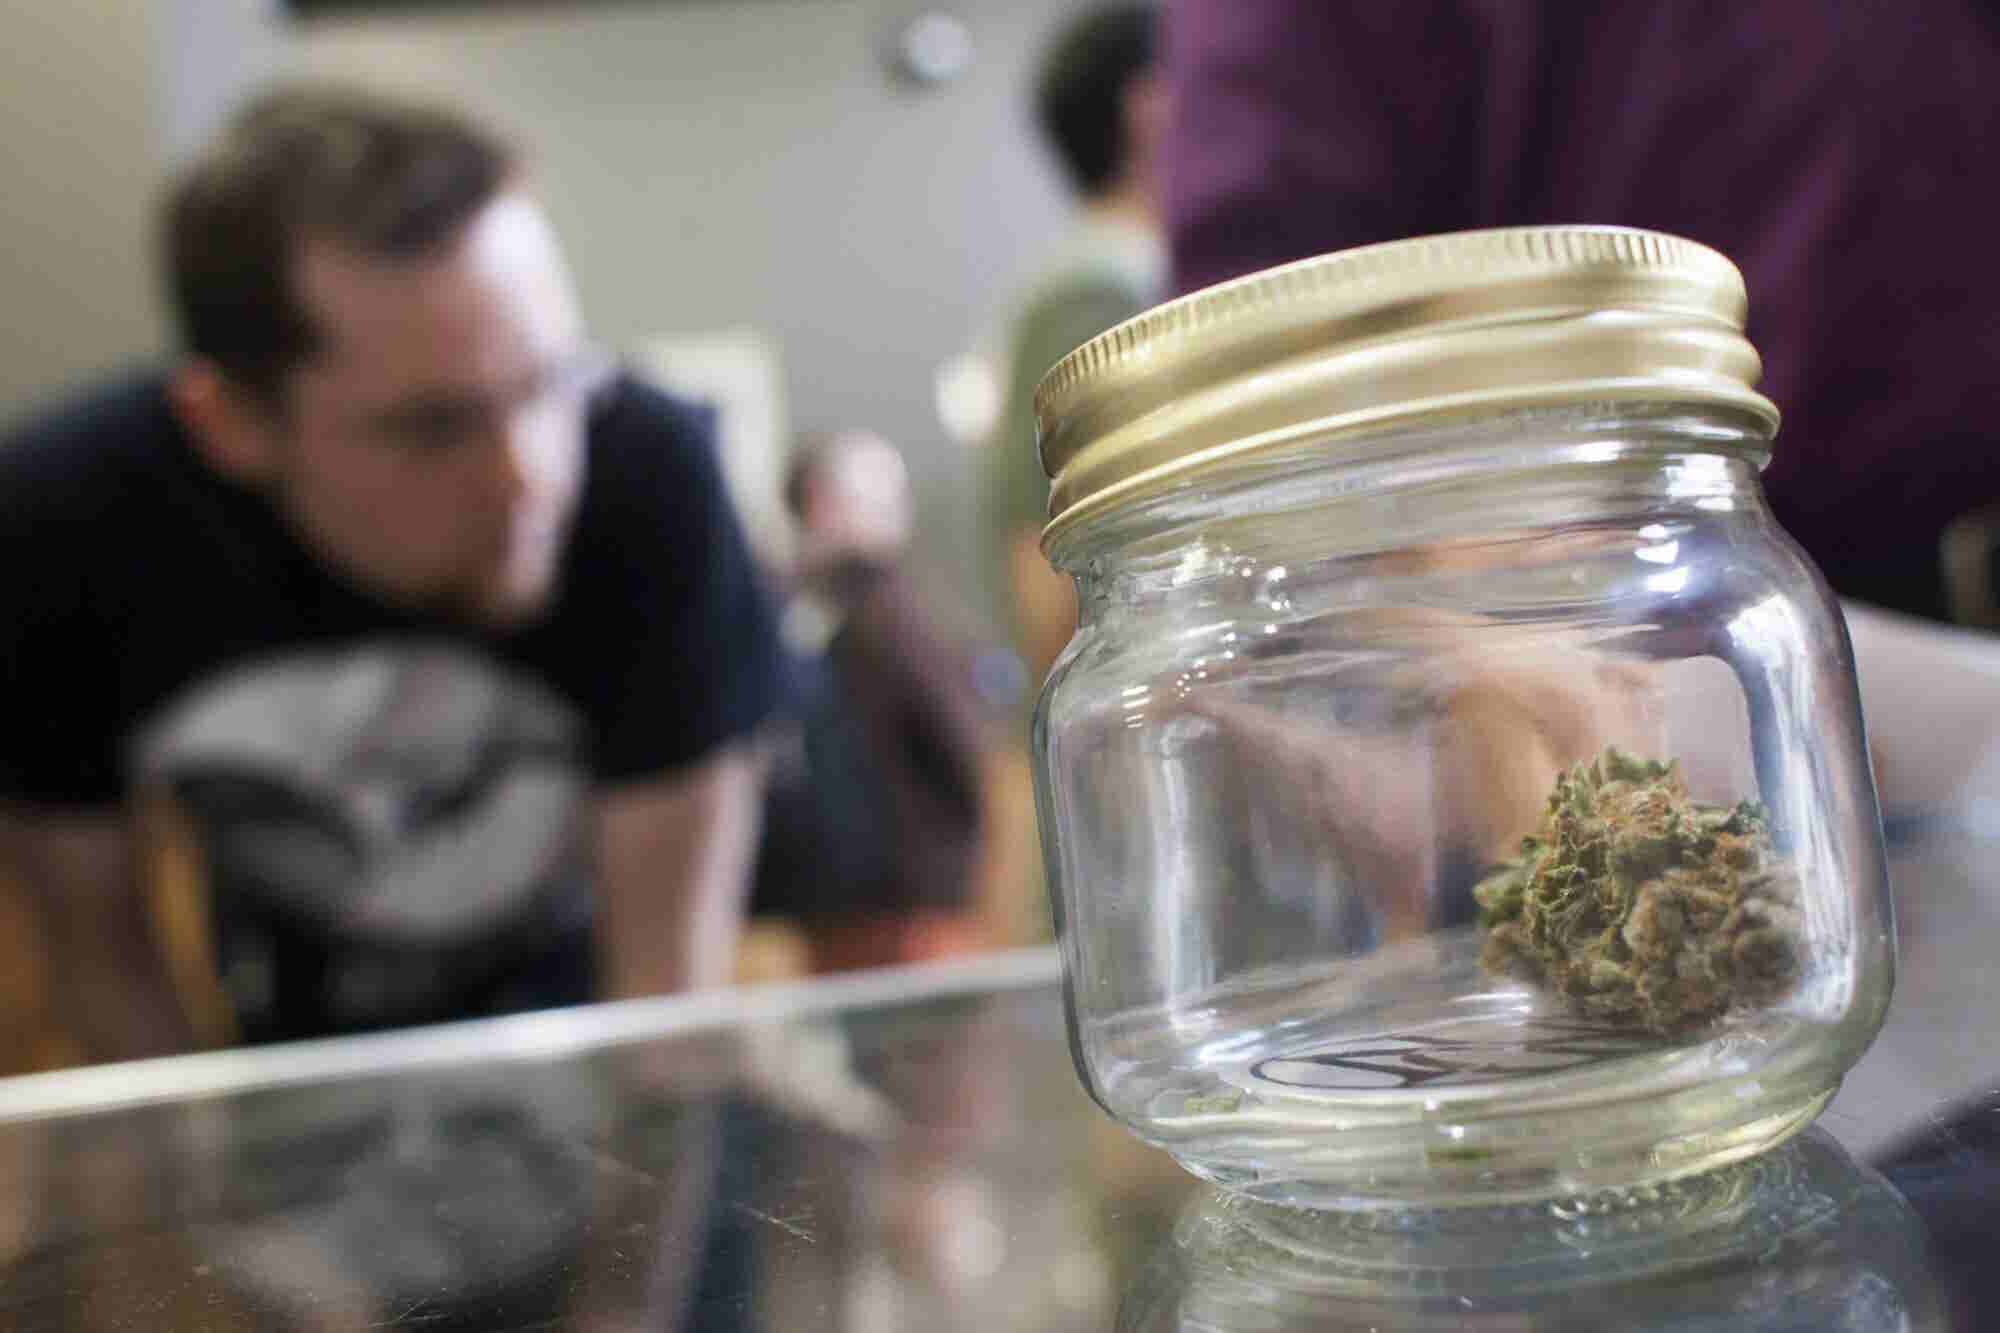 Teen Weed Use Has Declined Since Washington Legalized Adult-Use Cannabis